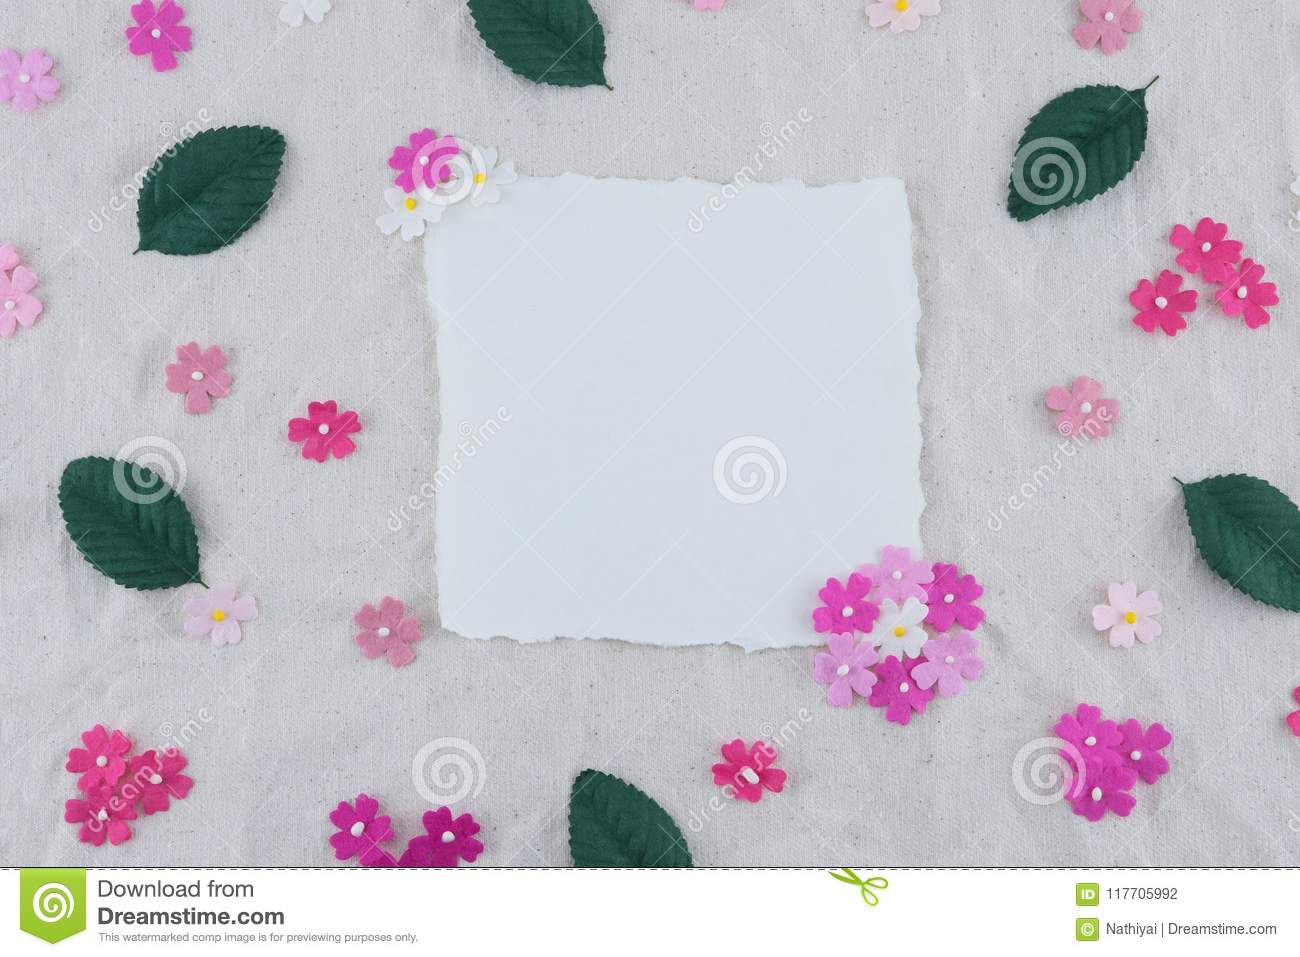 1000d379f35 Blank white card decorated with pink tone paper flowers and green leaves on  muslin fabric